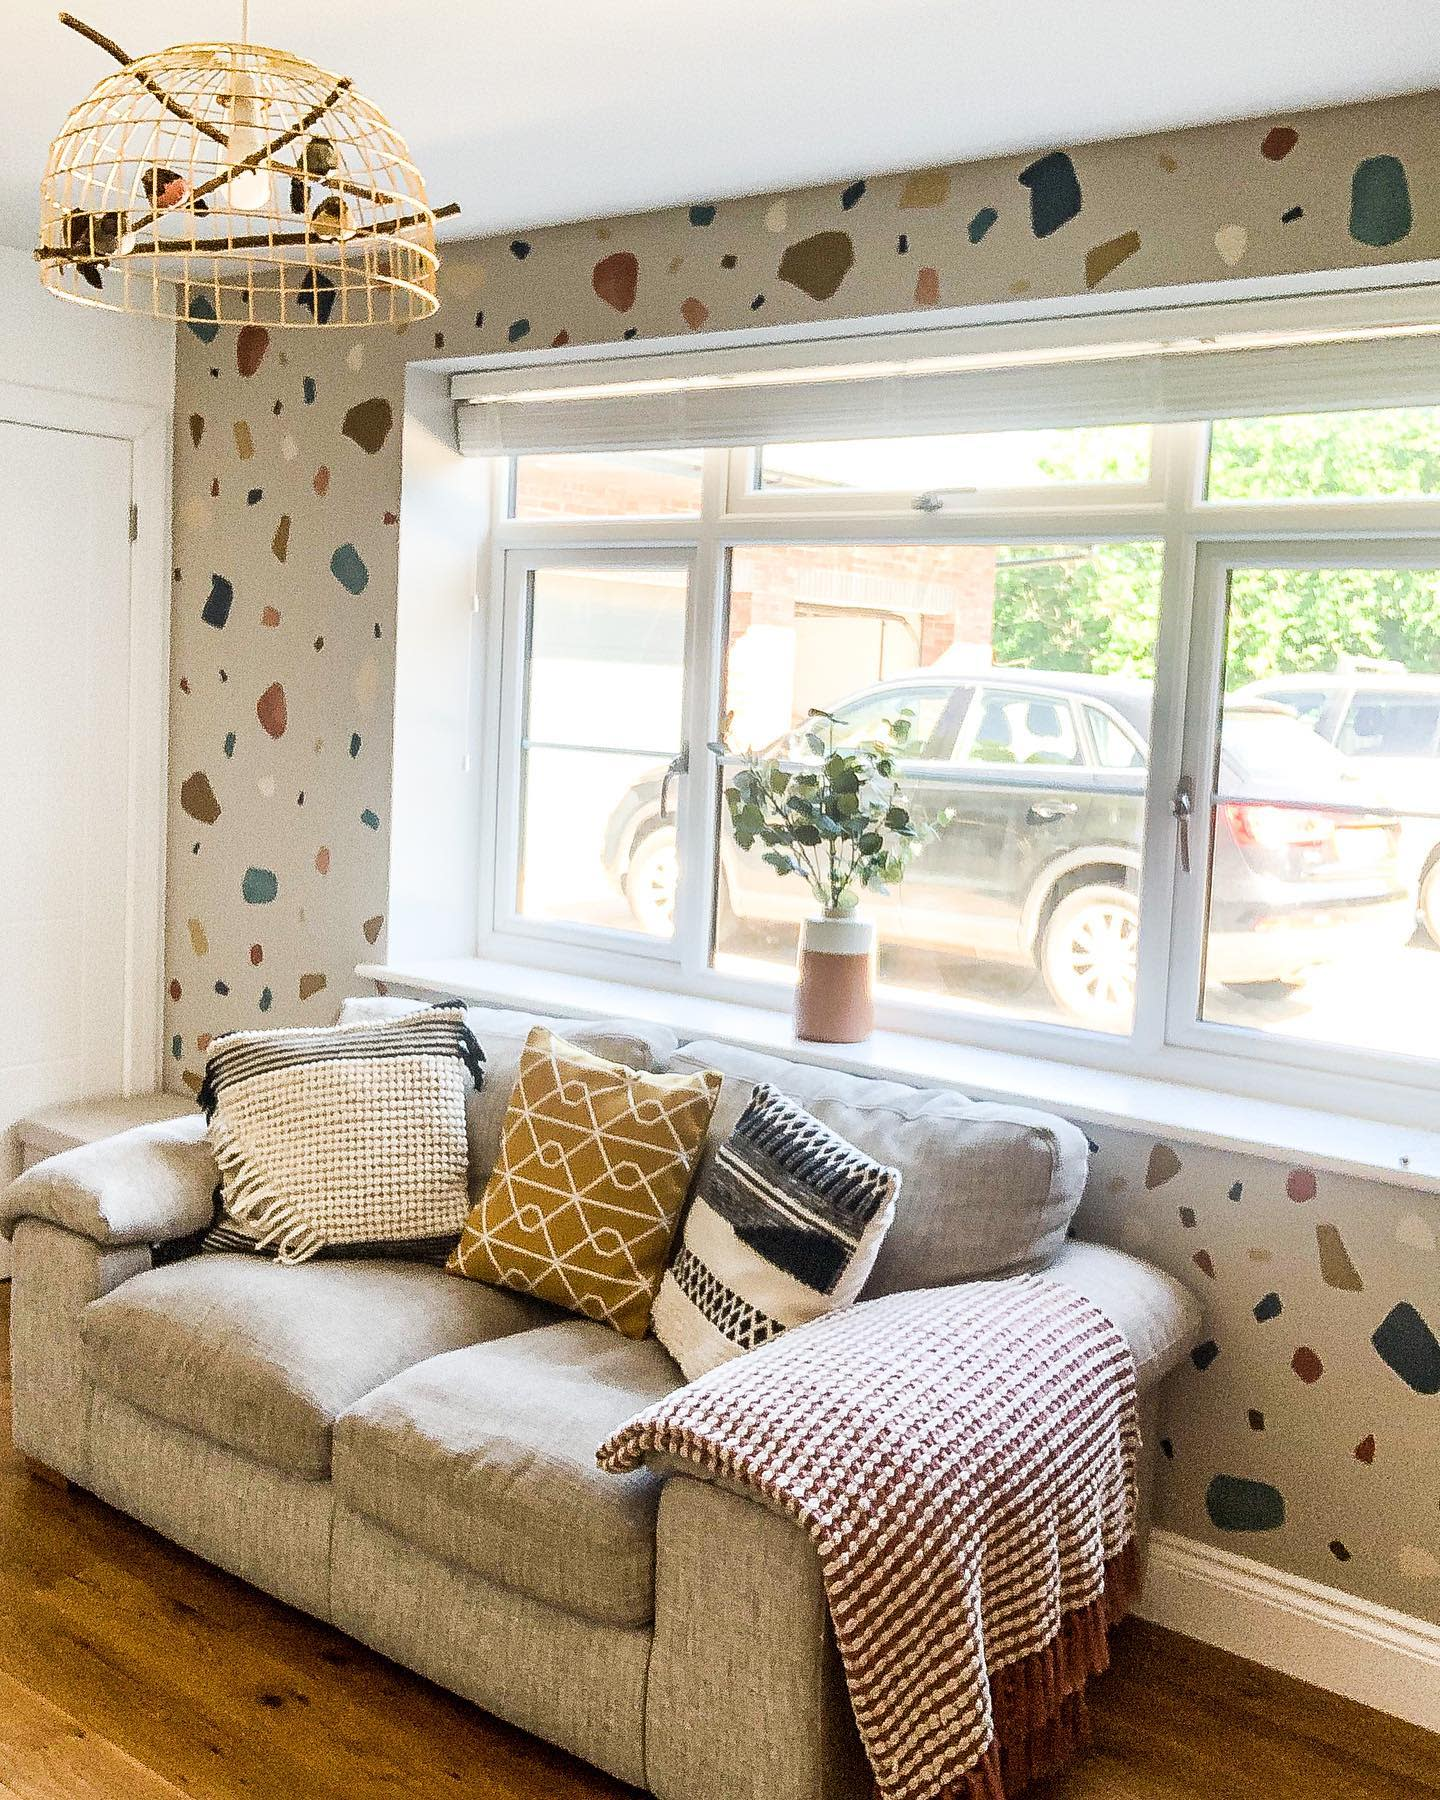 Wallpaper Accent Wall Ideas for Living Room -redbricks_lifestyle